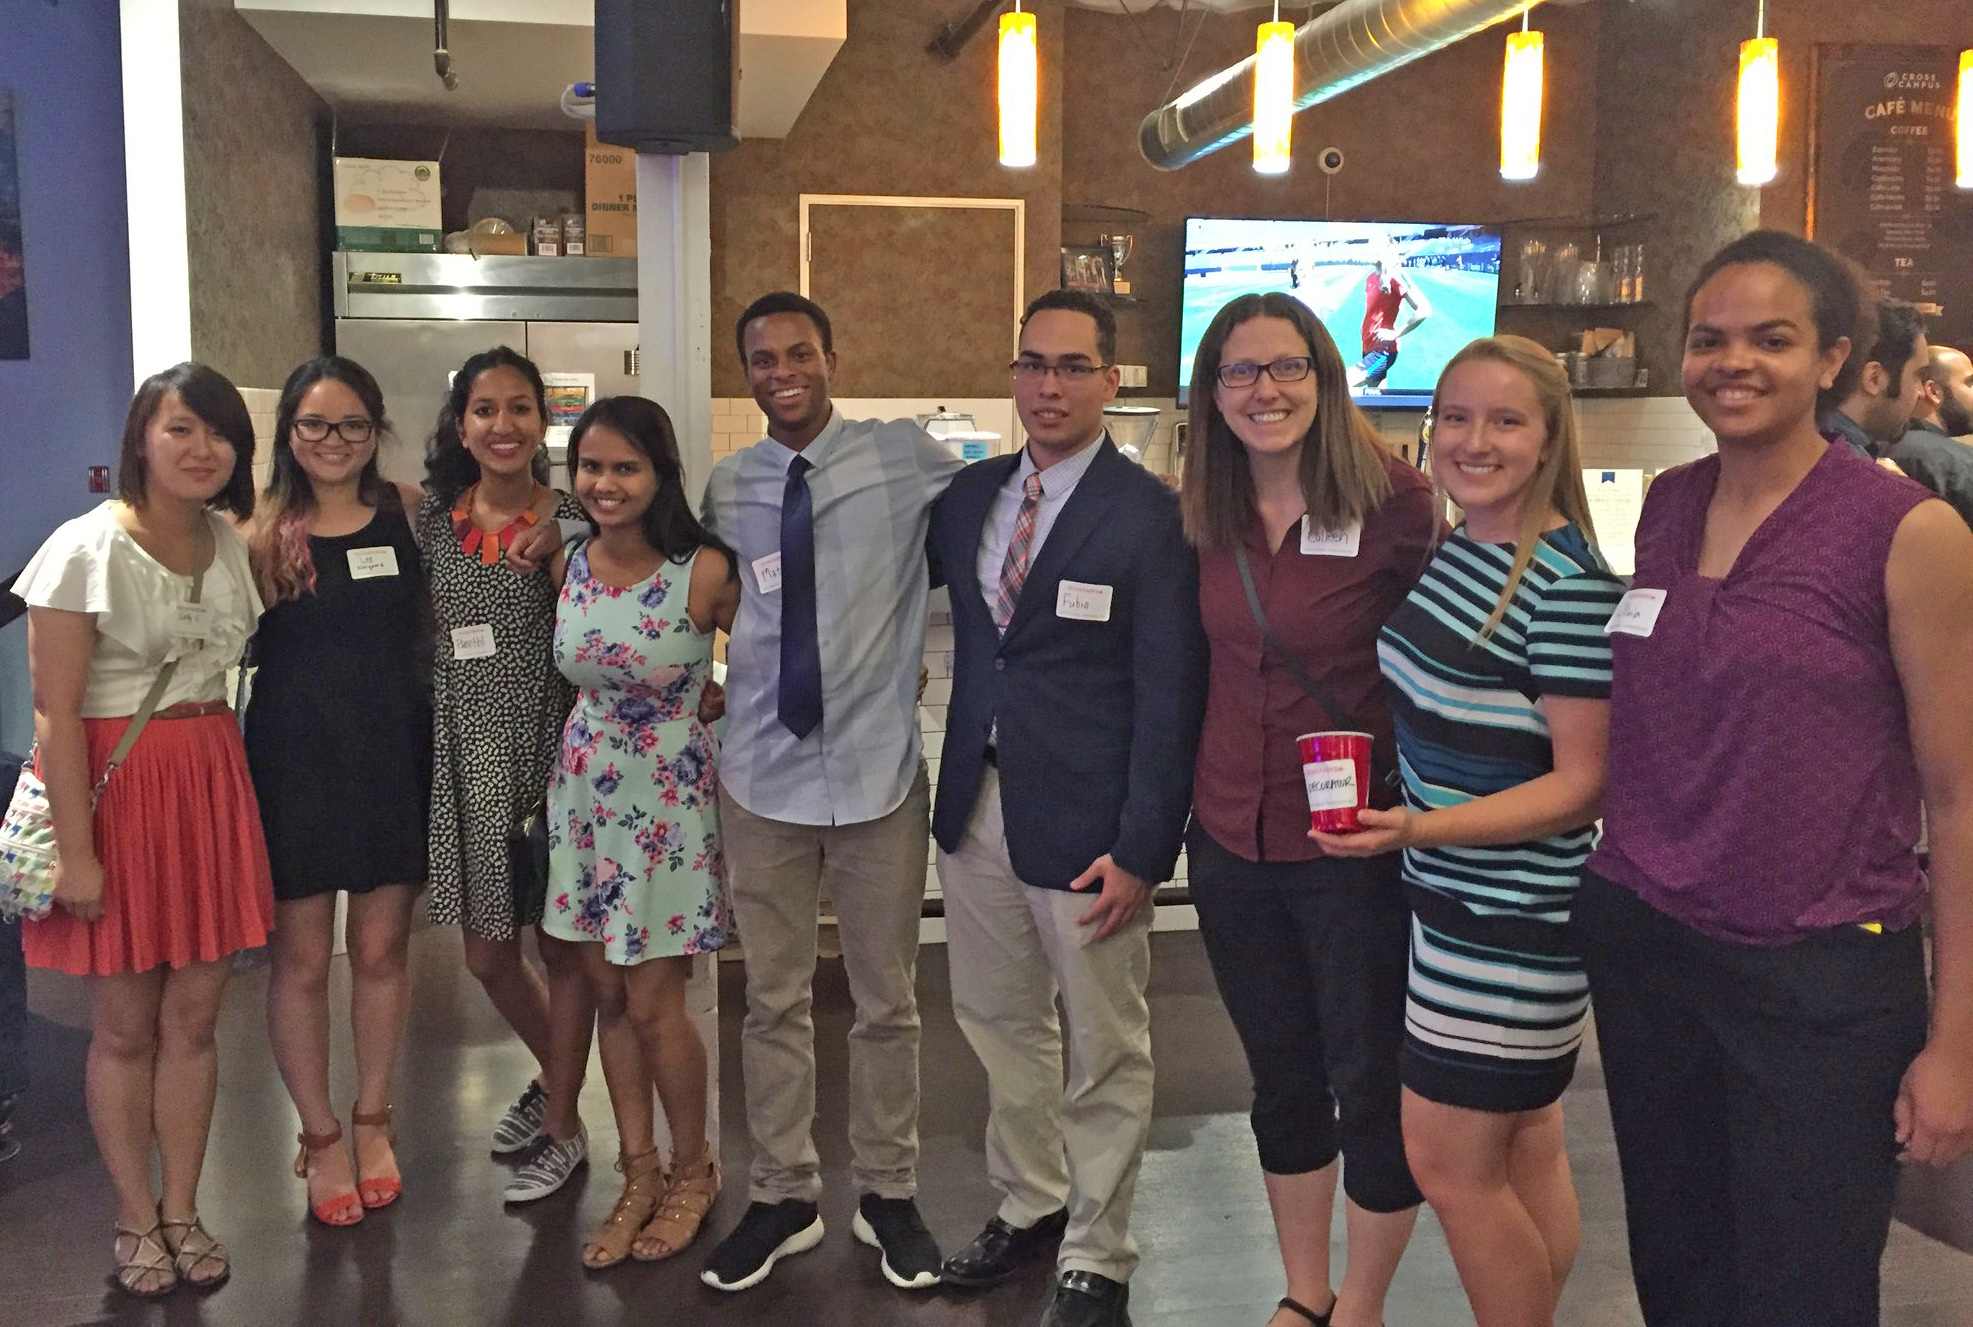 Harvey Mudd students and alumna at Techsparks event